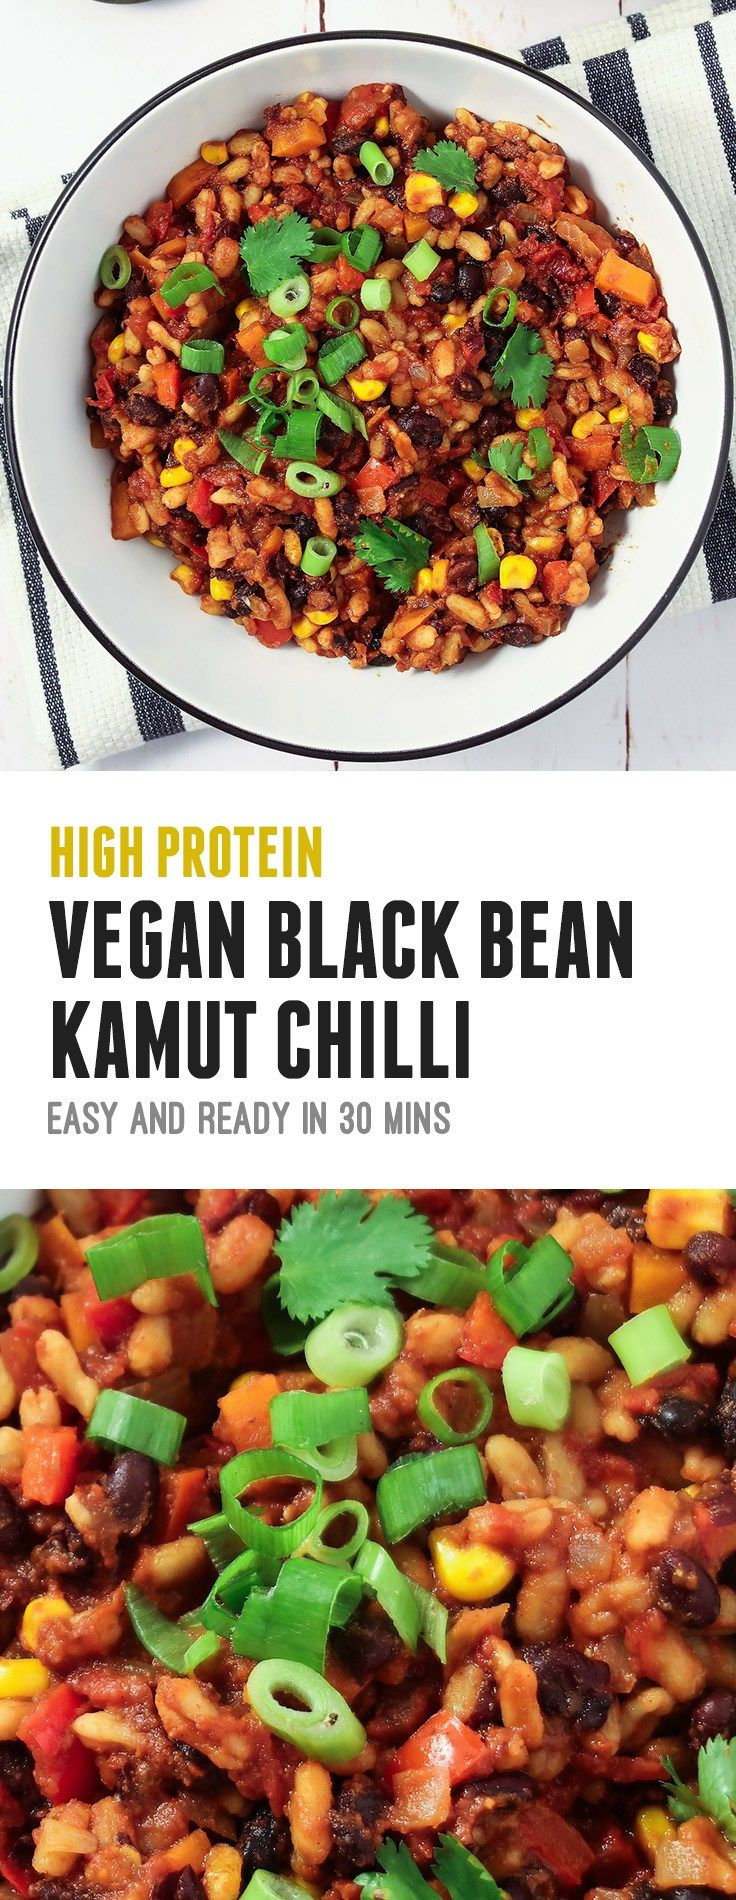 High Protein Vegan Black Bean And Kamut Chilli